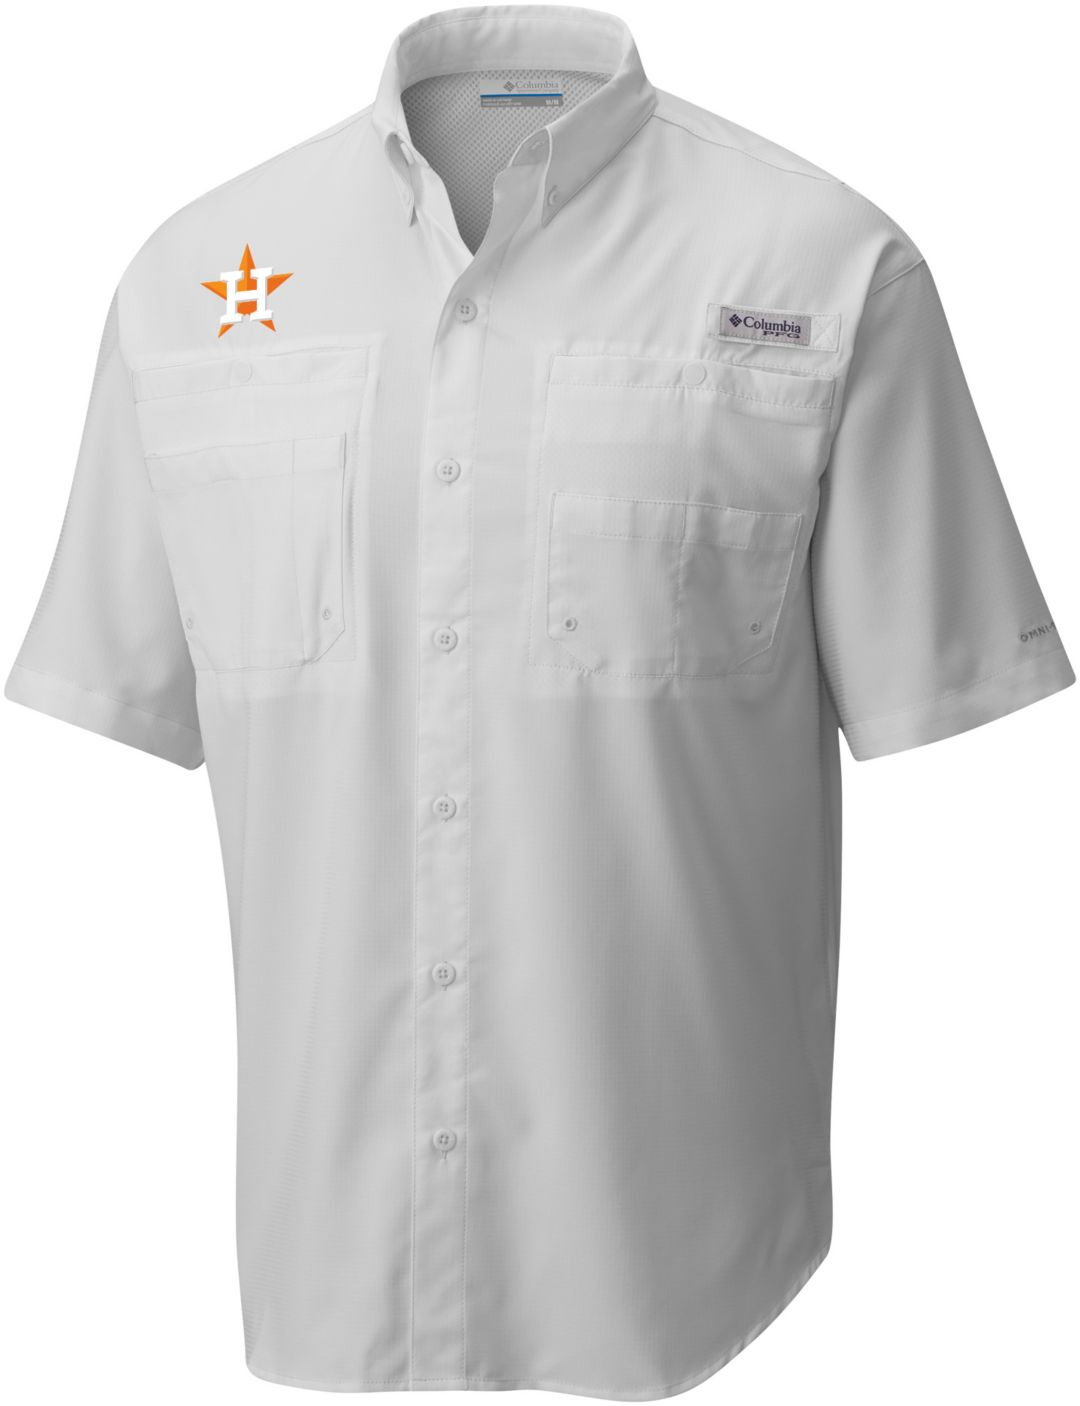 b206cb994b7 Columbia Men's Houston Astros Tamiami Performance Short Sleeve Shirt ...